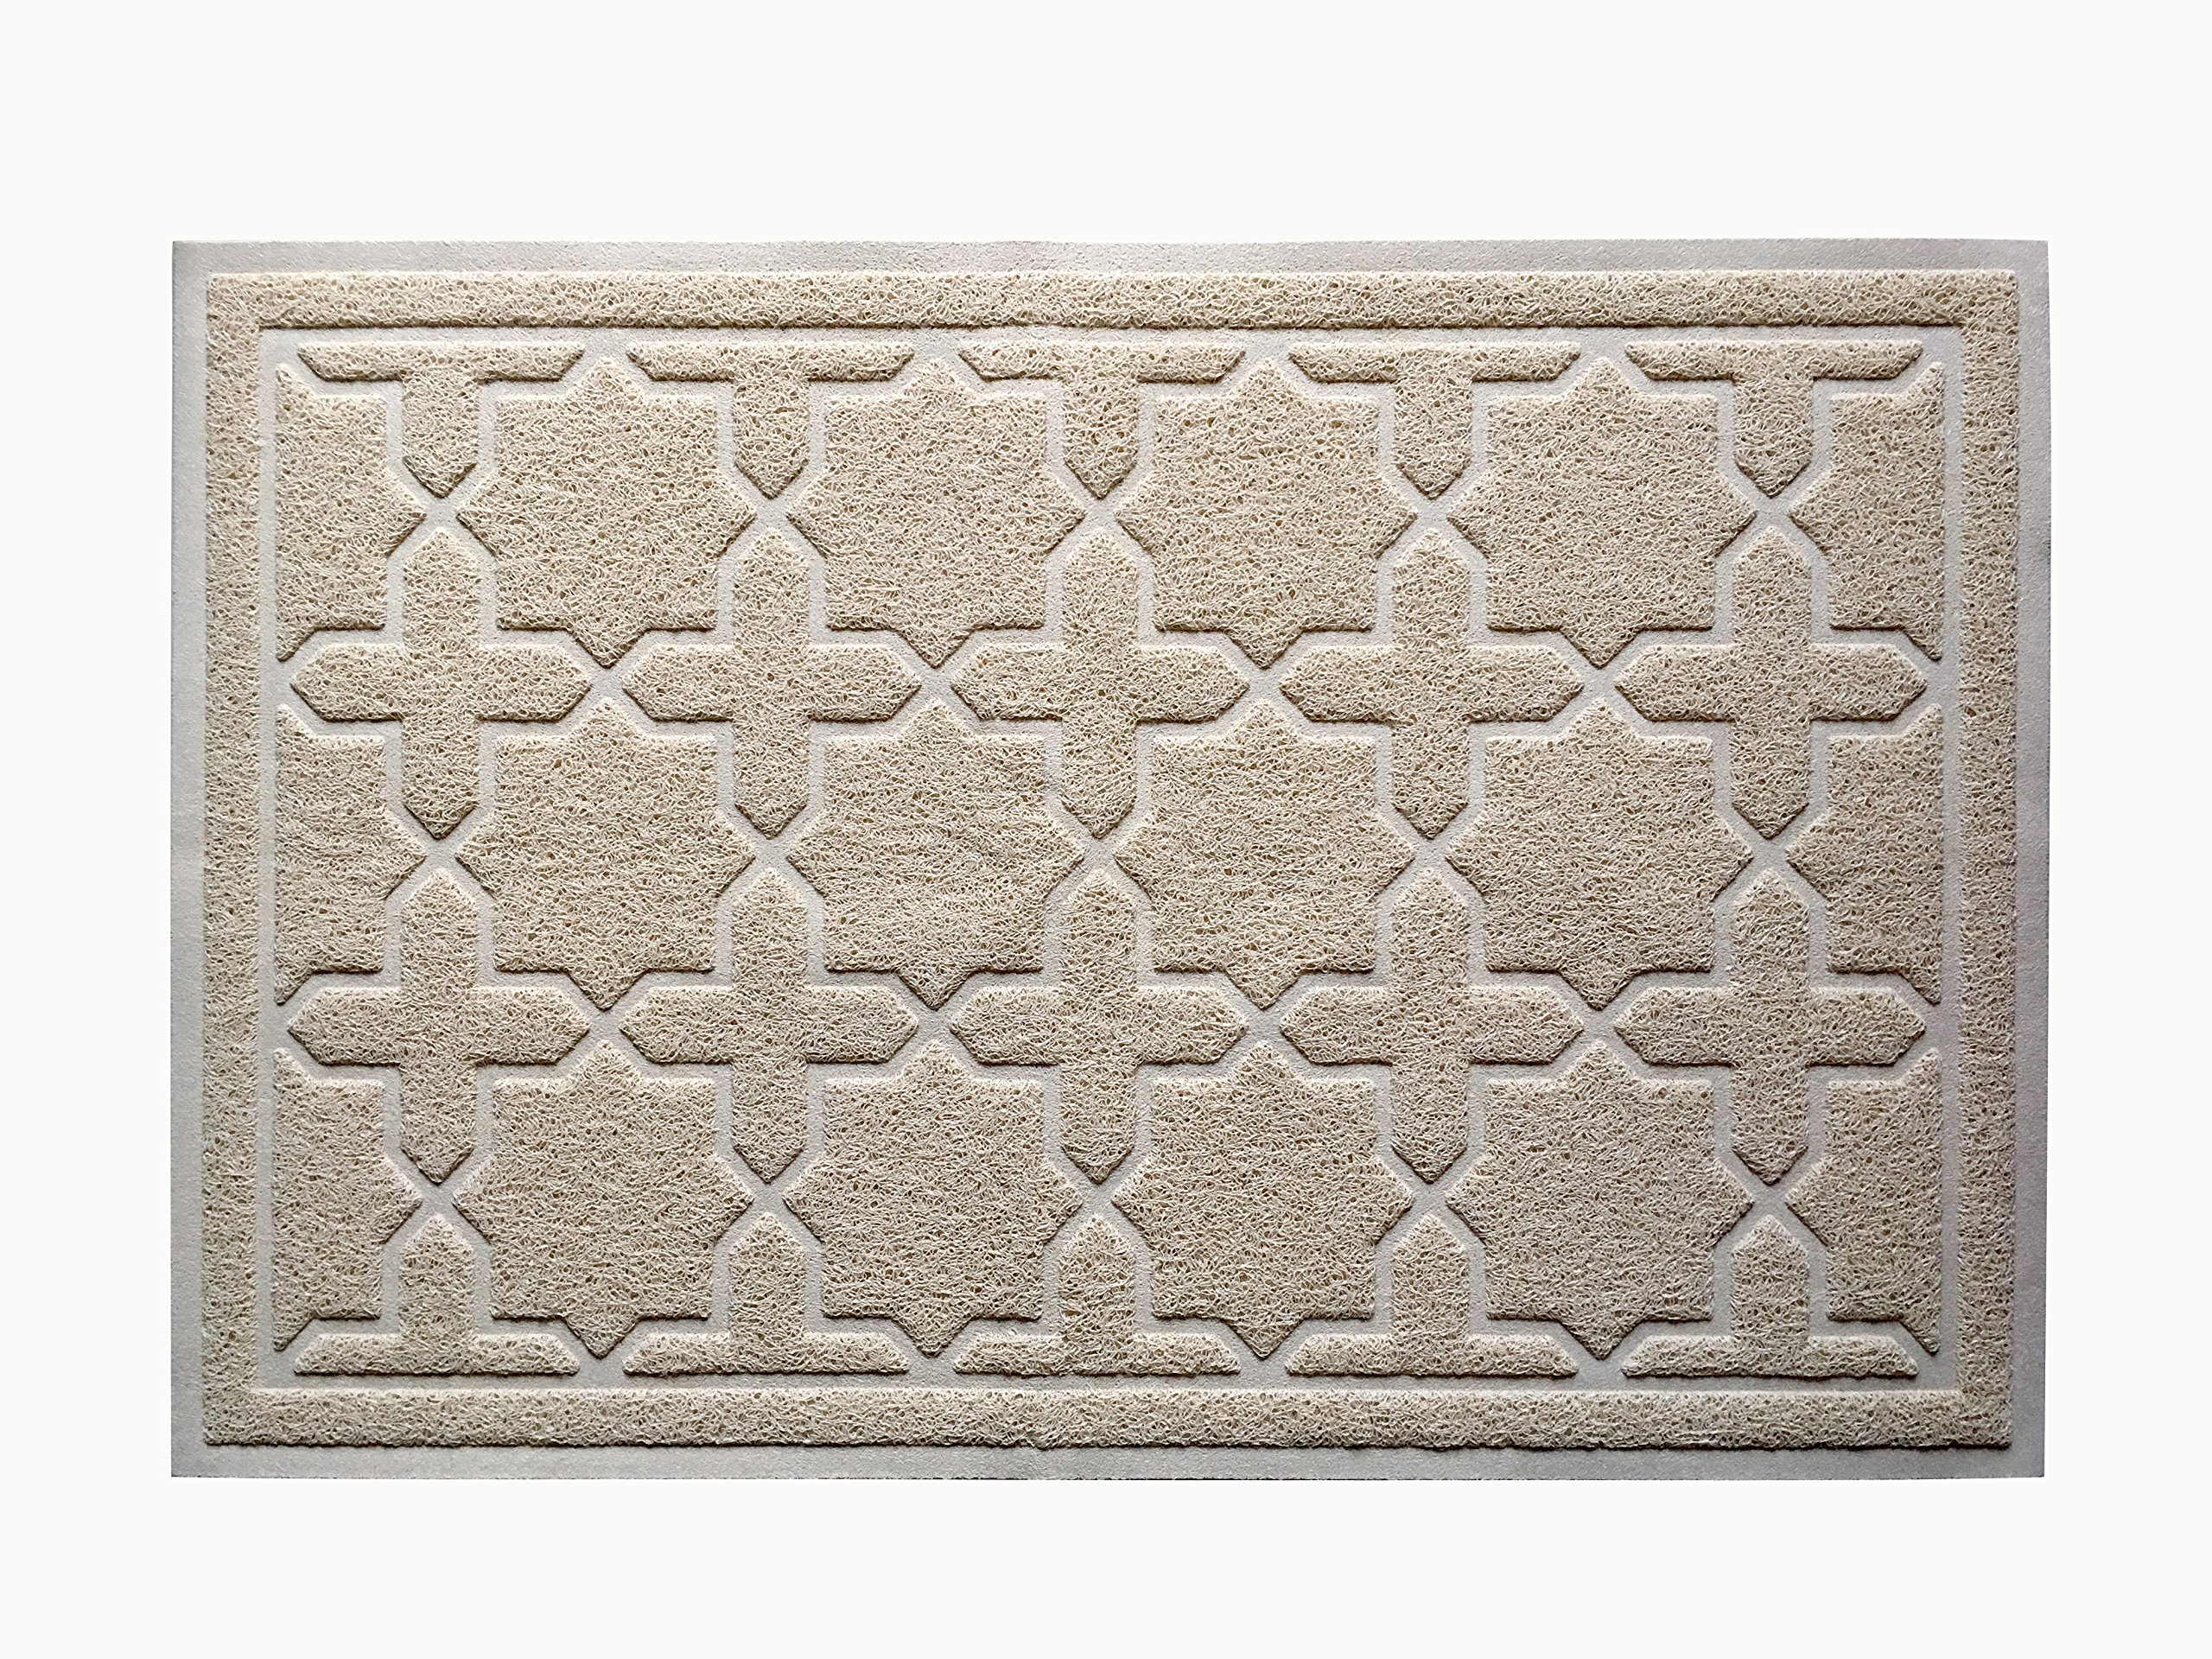 CLC Signature Cat Litter Mat from Antimicrobial Non-Slip Pet Feeding Mat in Extra Large (XL Size 35 inches by 23 inches). New Modern Design. Keeps Litter & Residue Off Floors. (Beige)